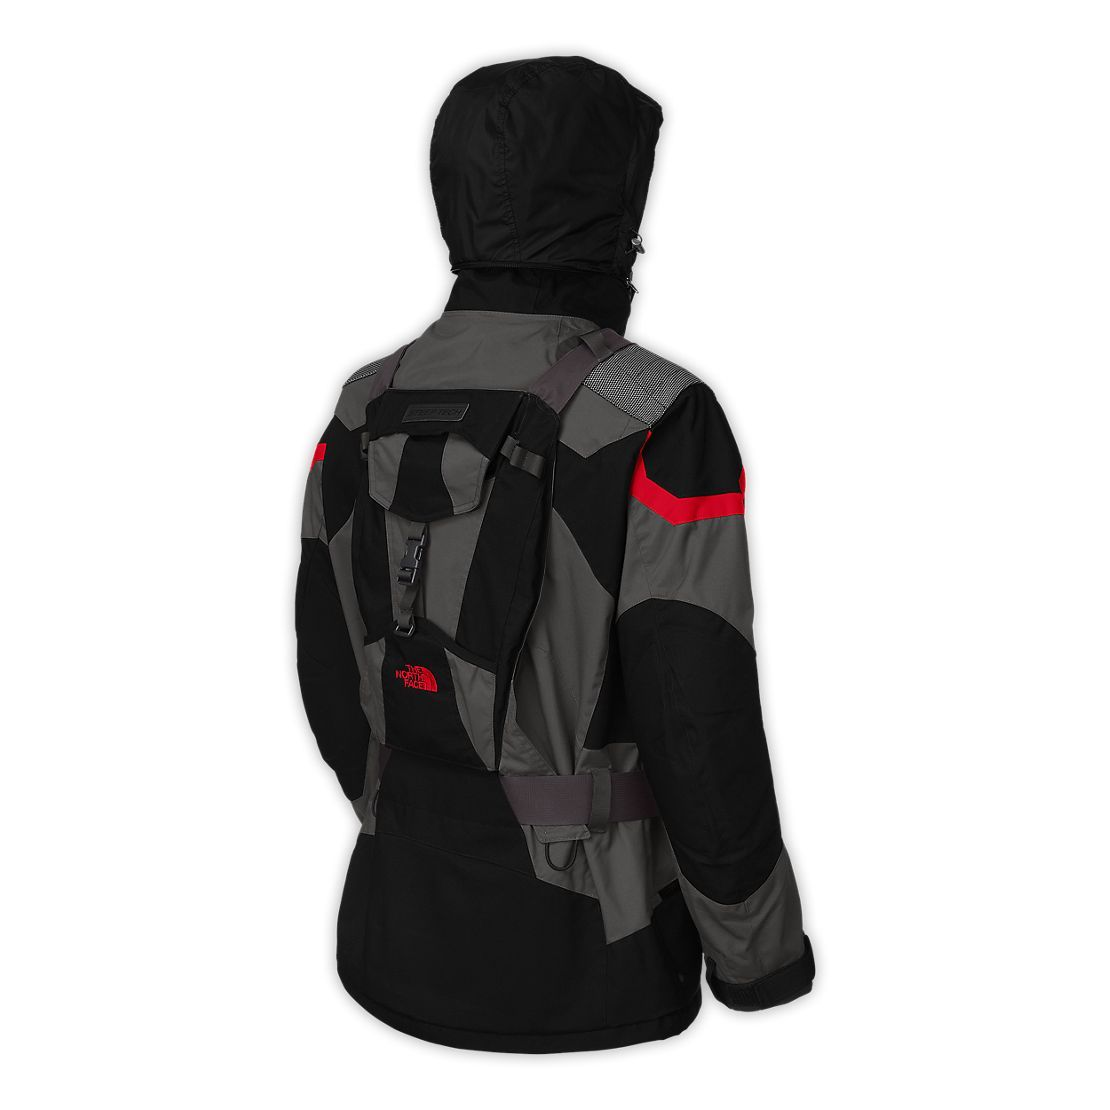 aeb965cb2 The North Face Men's Jackets & Vests MEN'S STEEP TECH™ TRANSFORMER ...